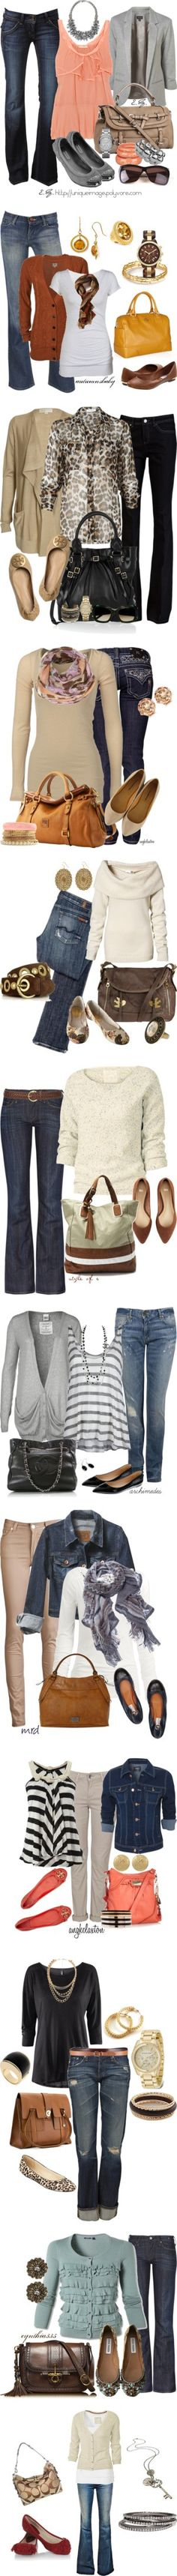 Fall denim styles/outfits ♥✤